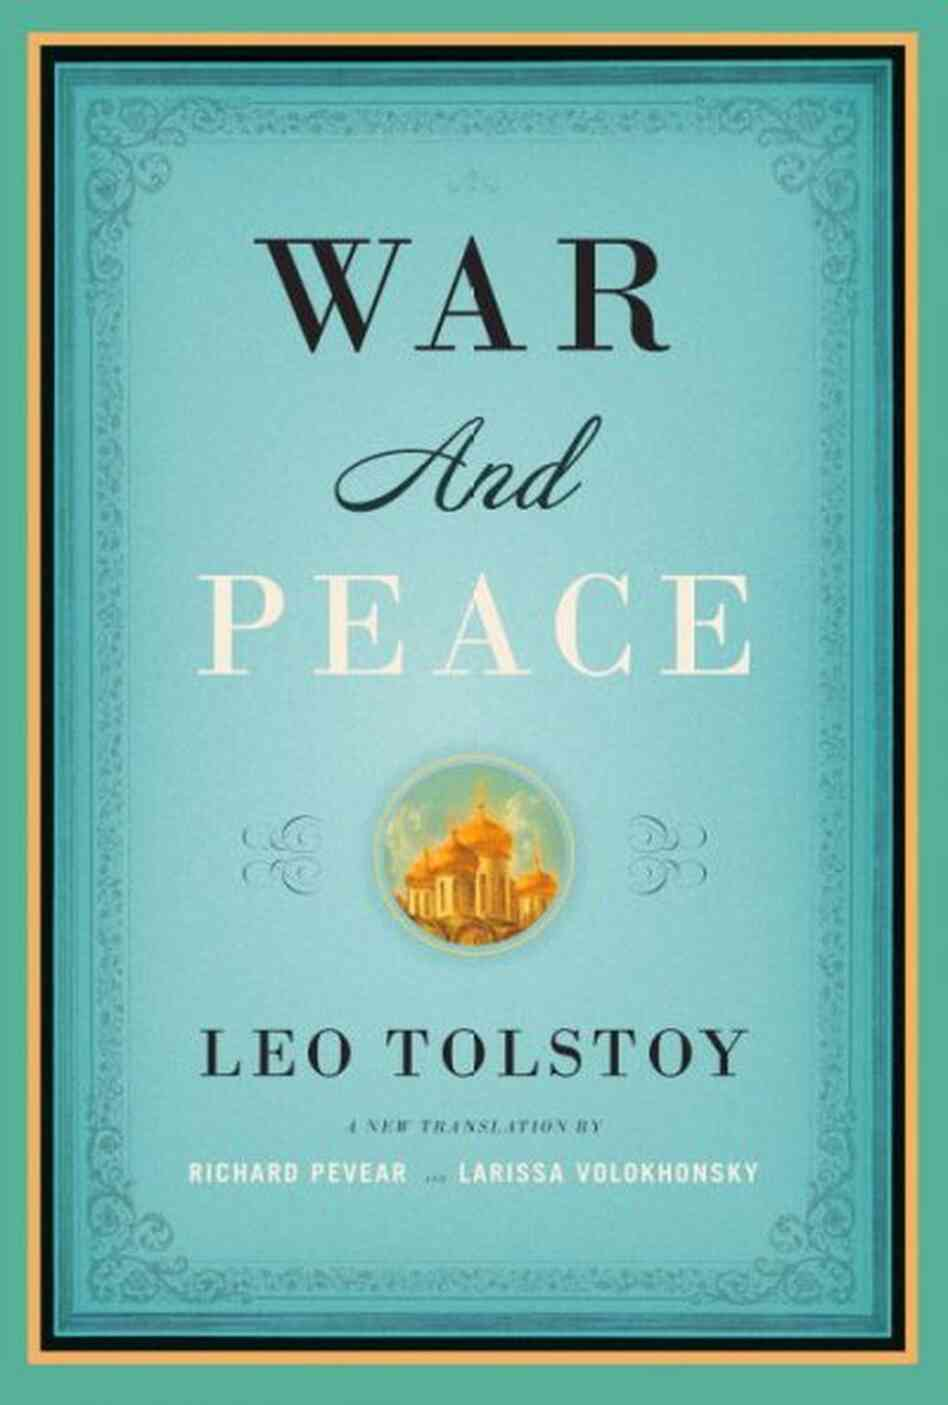 Classic Book Cover Ups ~ War and peace sparks a literary skirmish npr